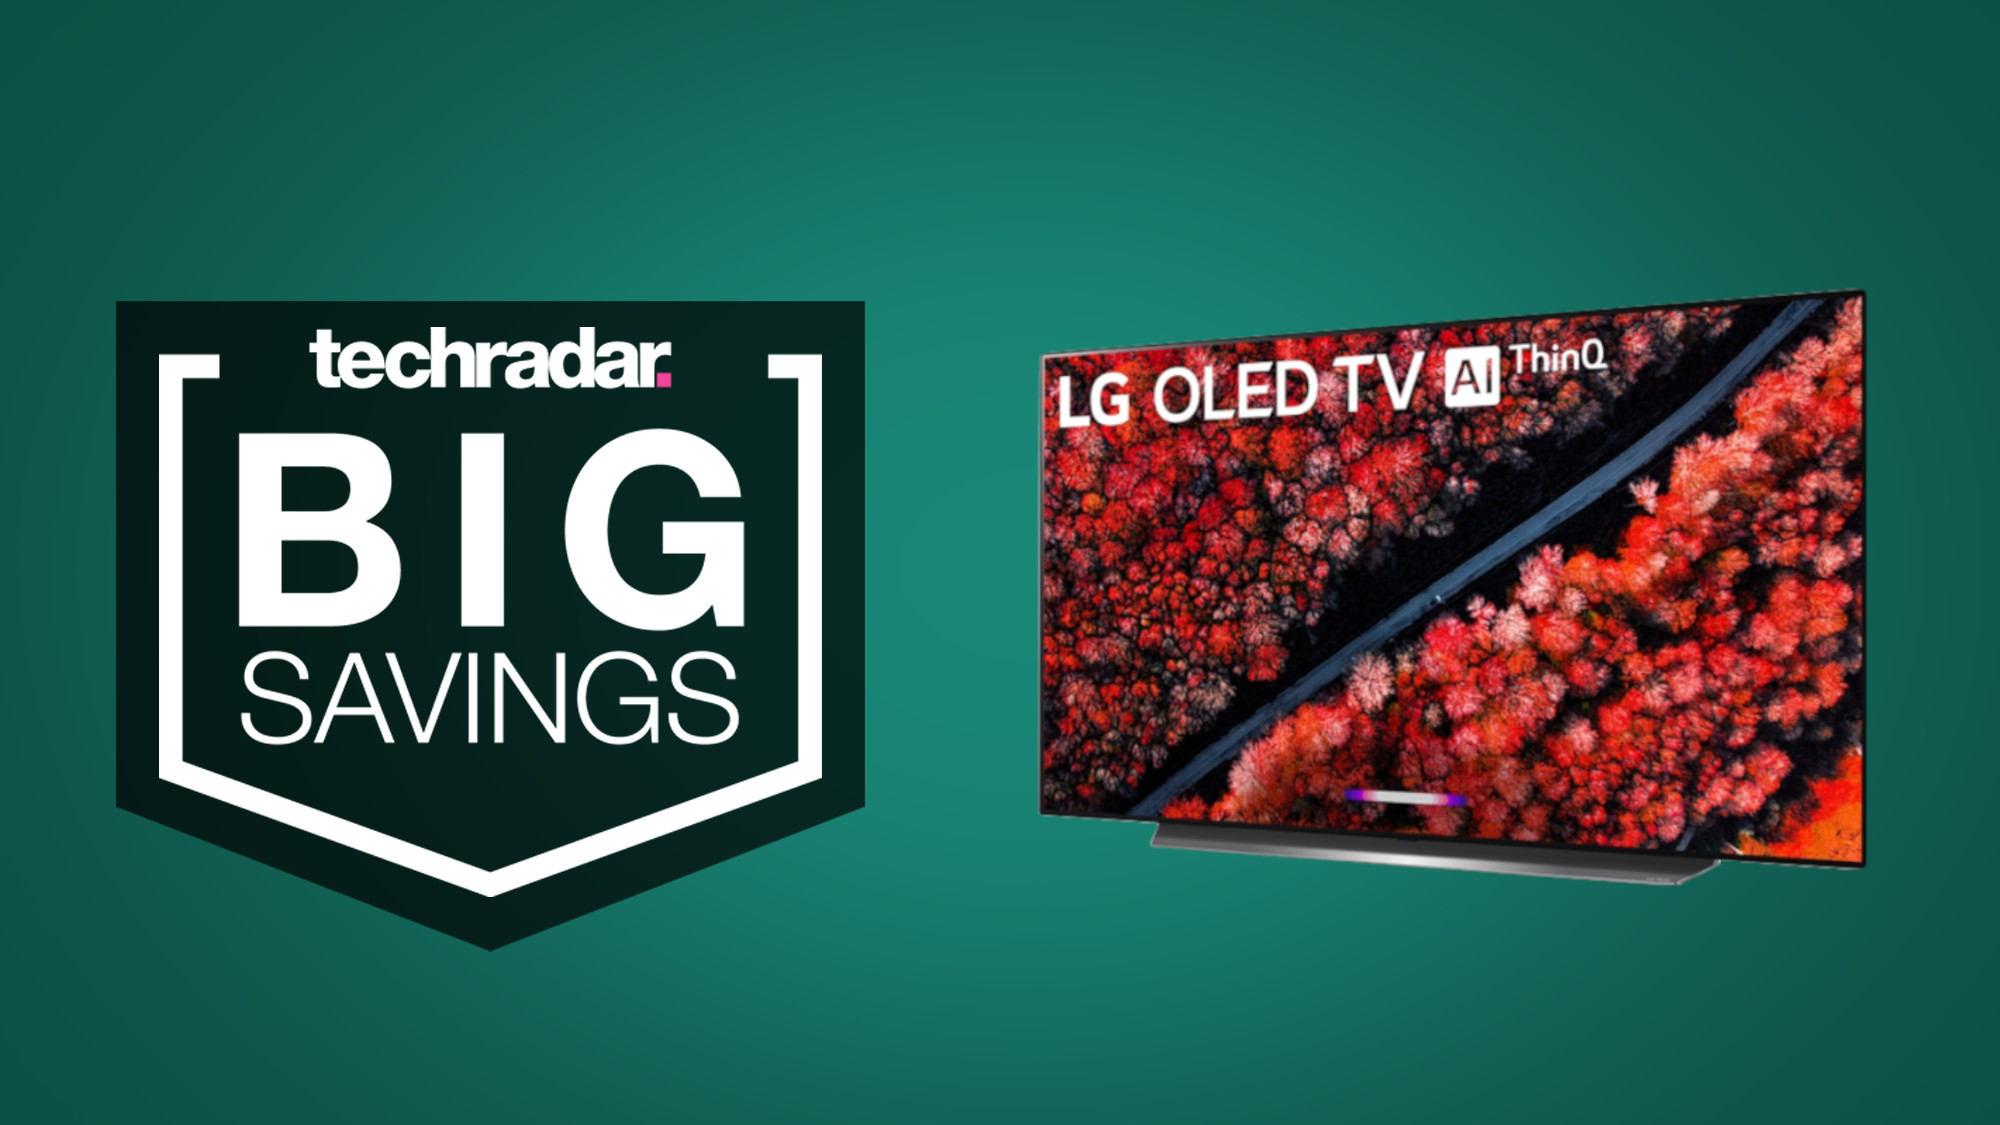 Save big with the latest OLED TV deals and cheap QLED TV sales